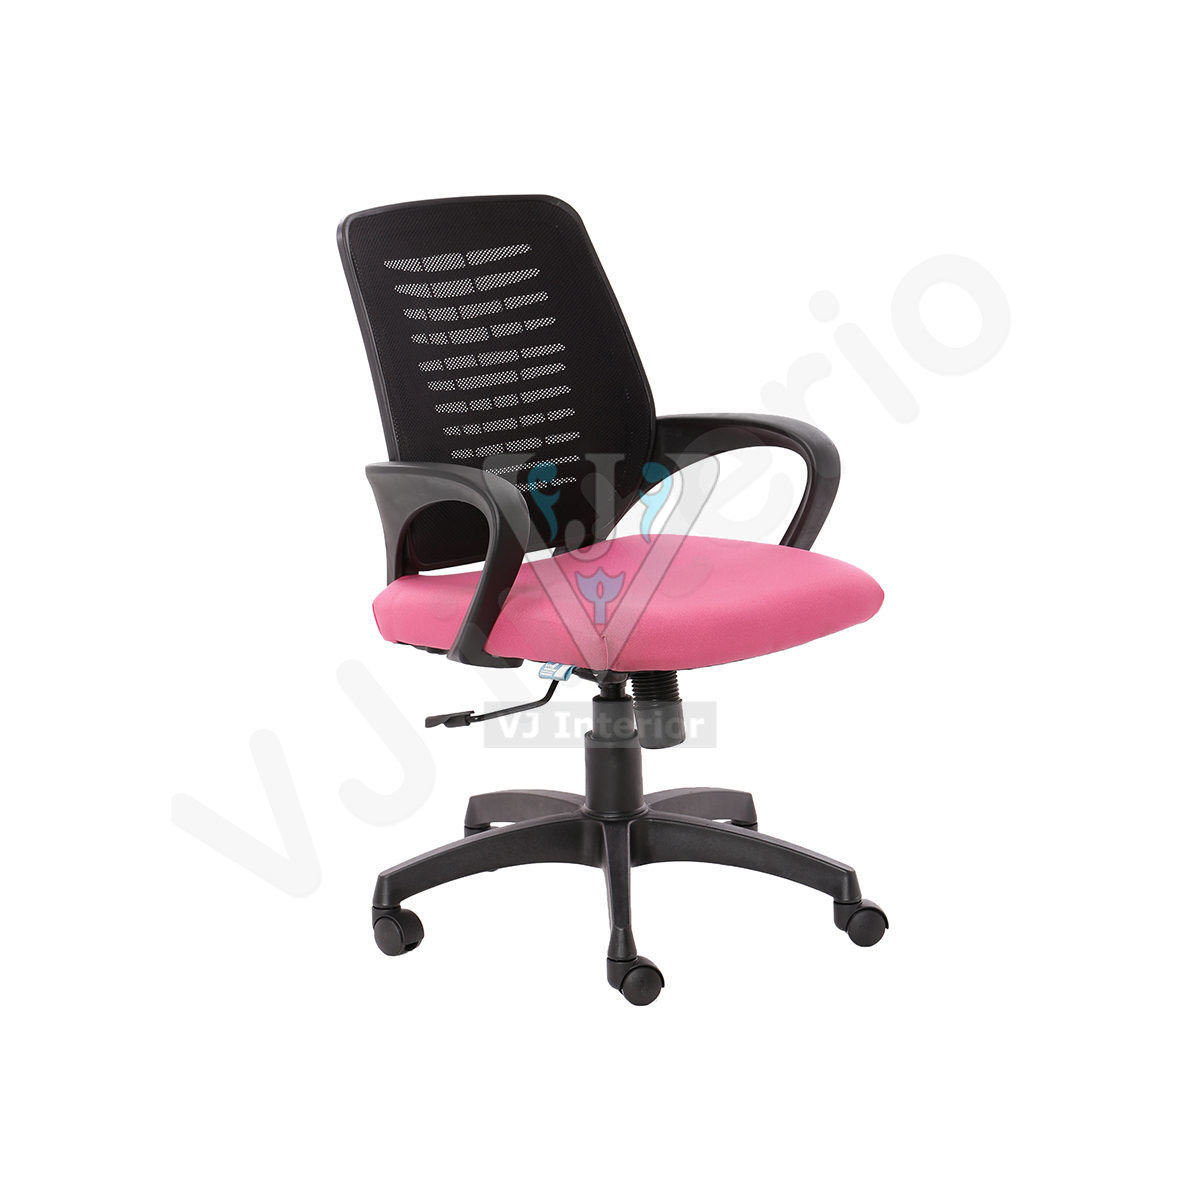 Costilla Black And Pink Ergonomic Office Chair